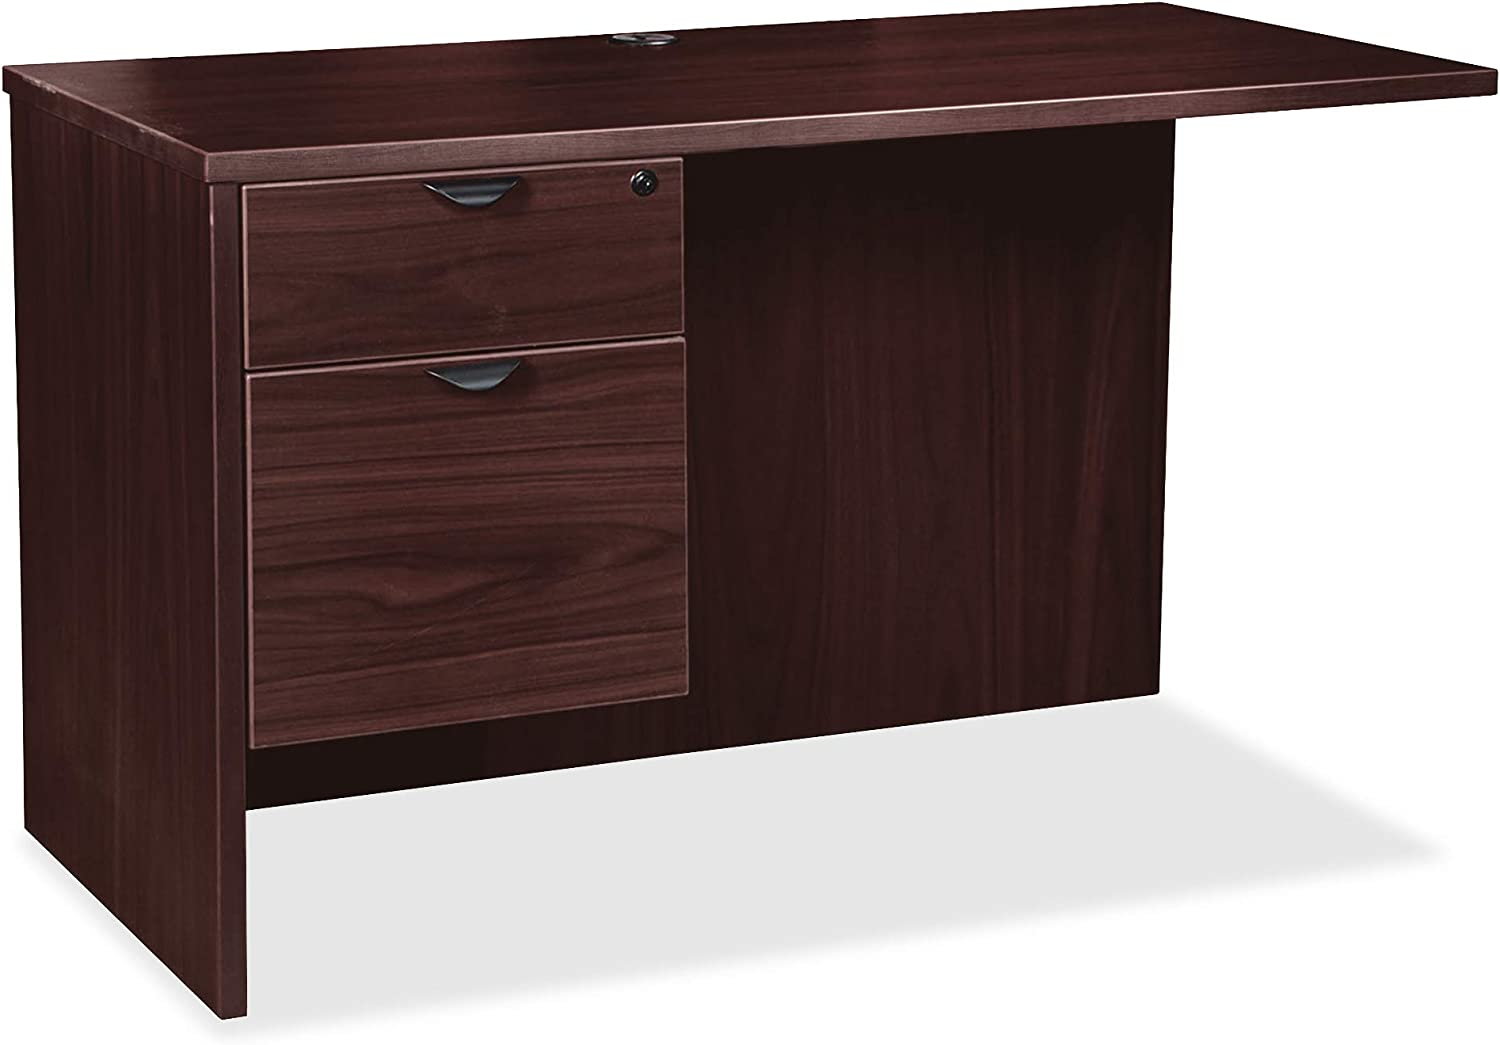 Lorell New York Mall Prominence Max 63% OFF 2.0 Return Espresso Laminate Mela Thermofused